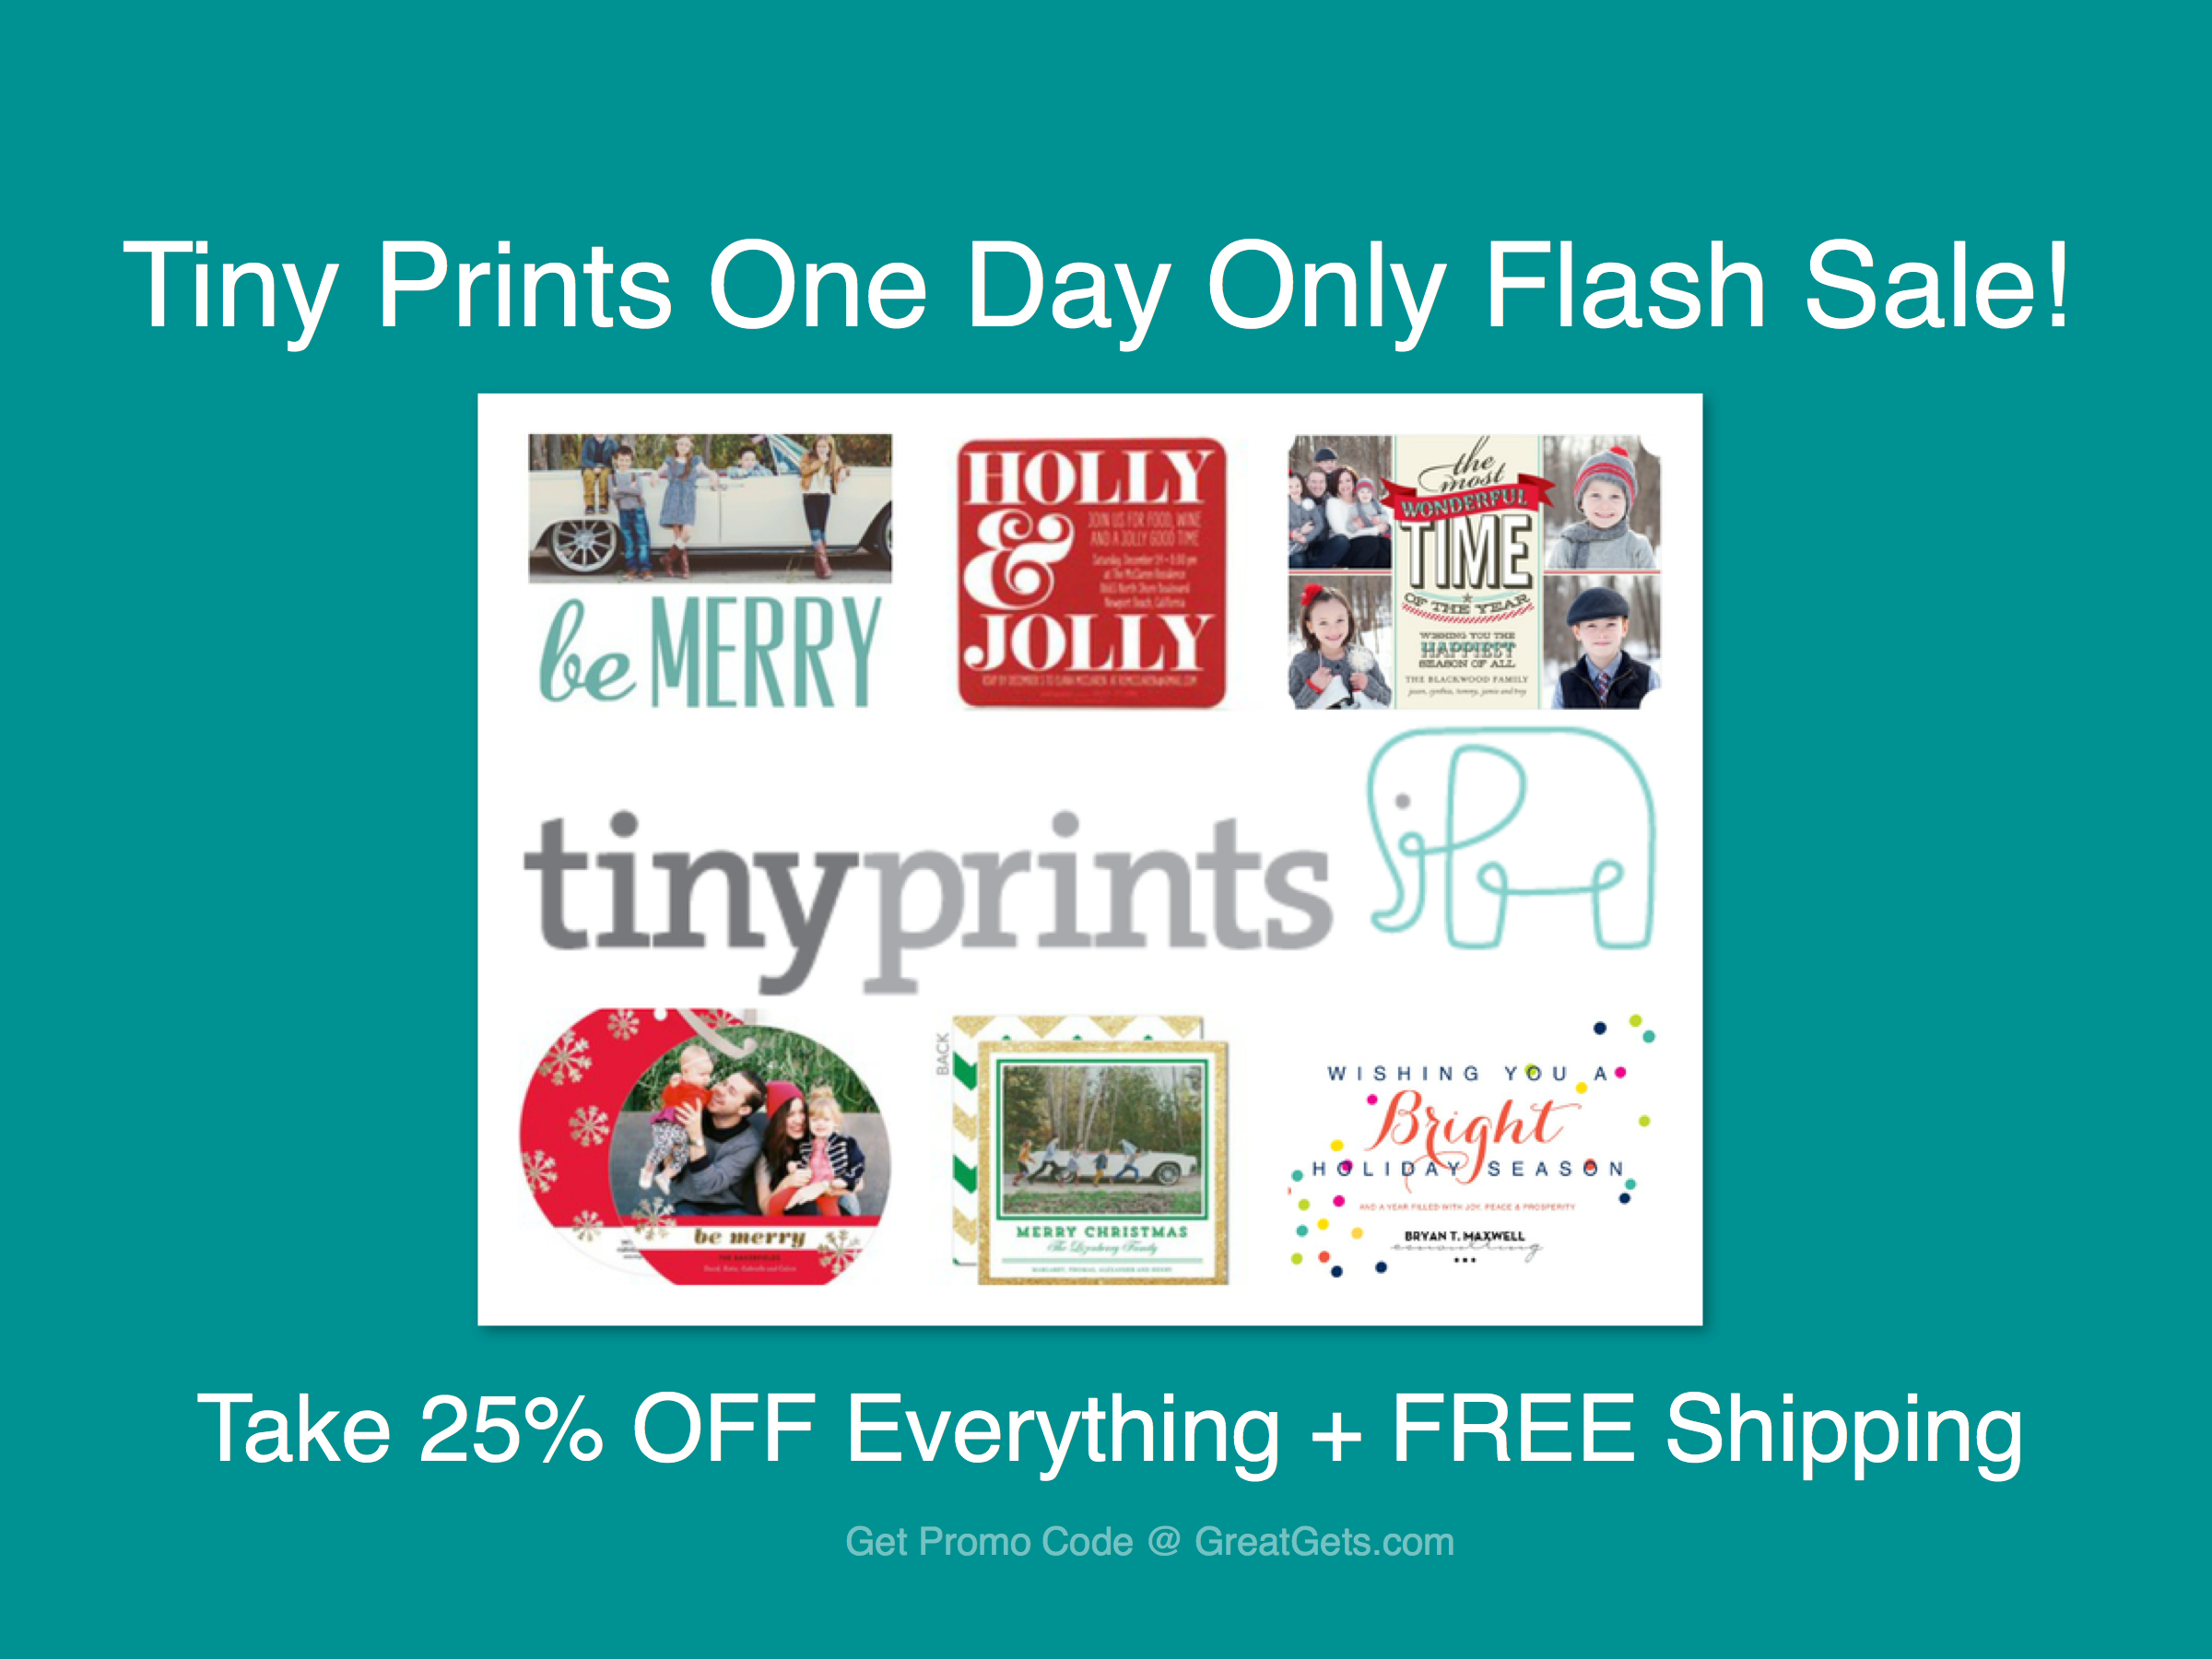 Check out Mixbook's expansive designs and photo templates. Get up to 50% off your 1st order with promo codes. New to Mixbook? Create your free account and receive up to 50% off your first order. or pearl finish paper only. Enjoy savings between % off everything else. This offer cannot be combined with other coupons, vouchers.